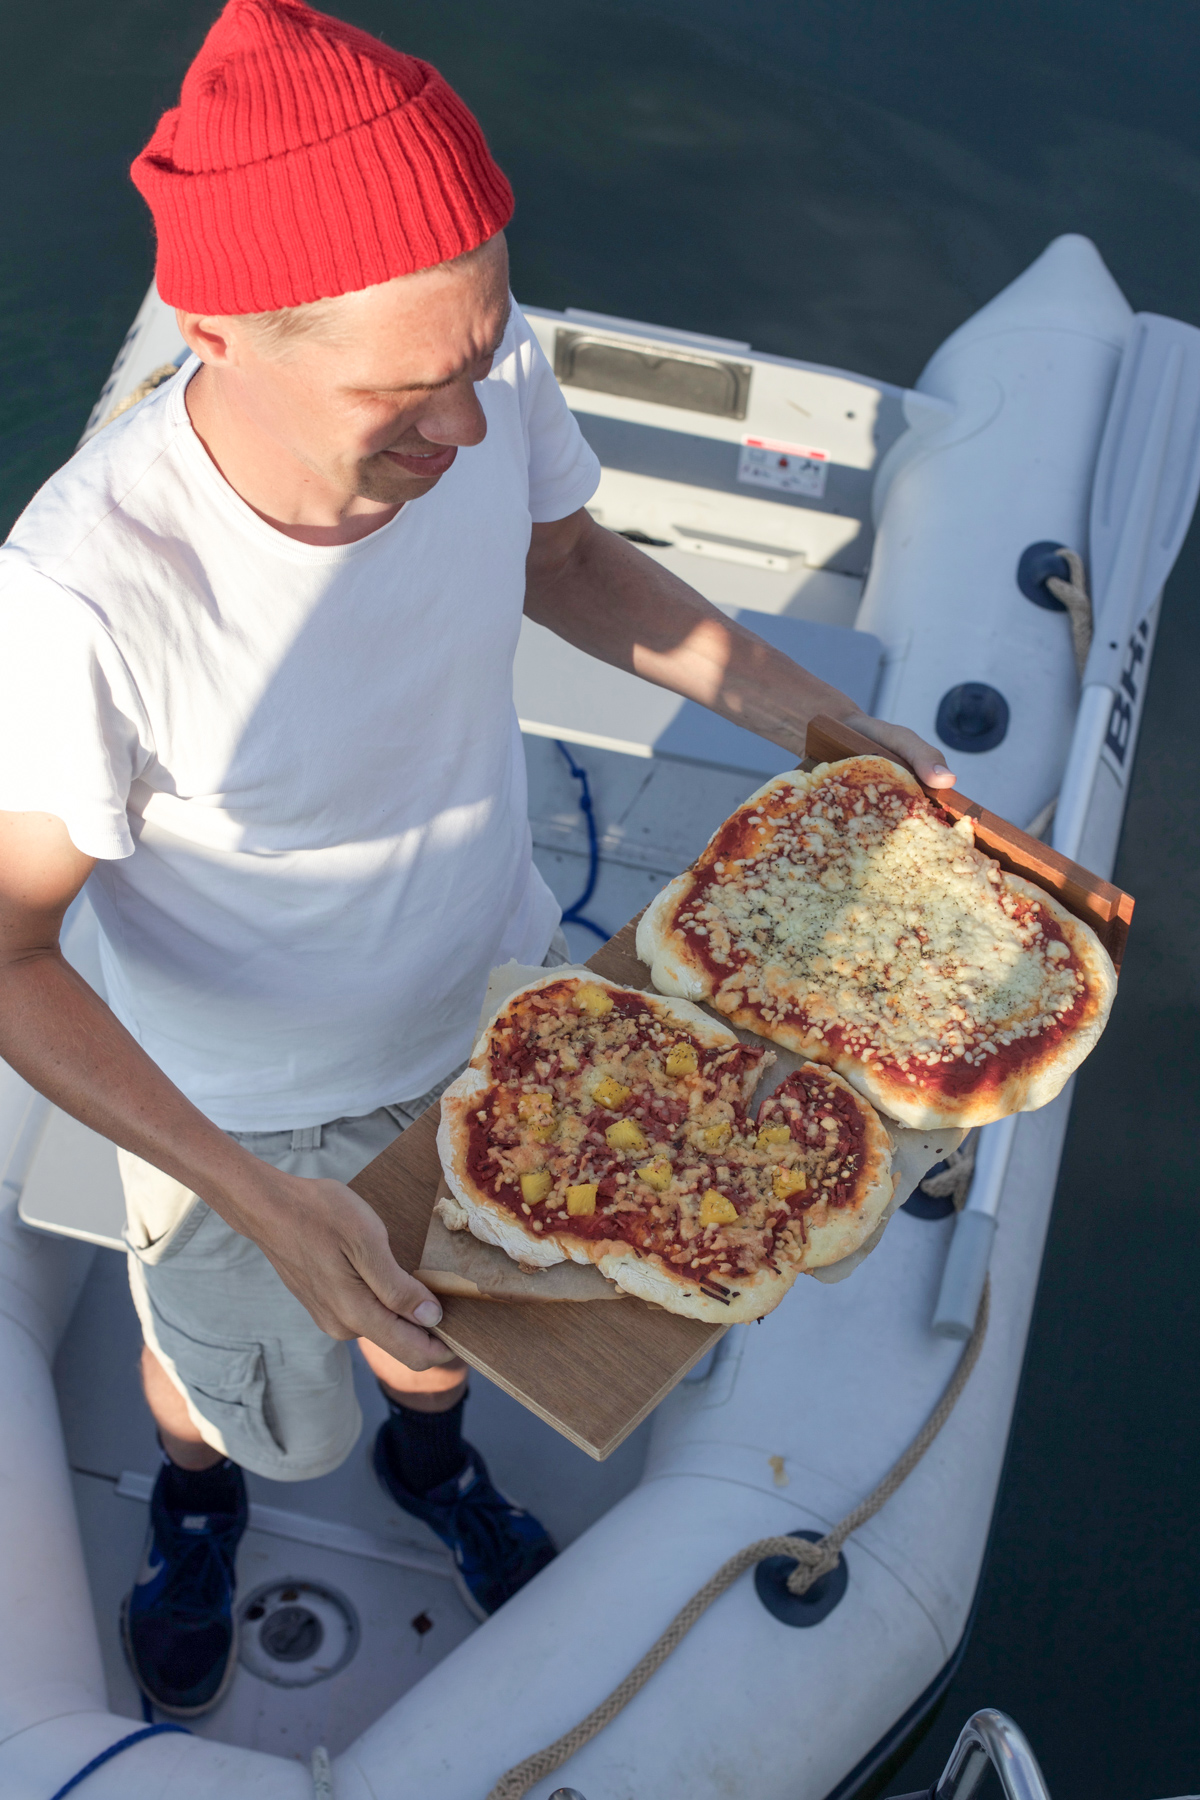 hungry chef pizza 6 - MITEN RIIKASTA TULI PIZZAKOKKI ?